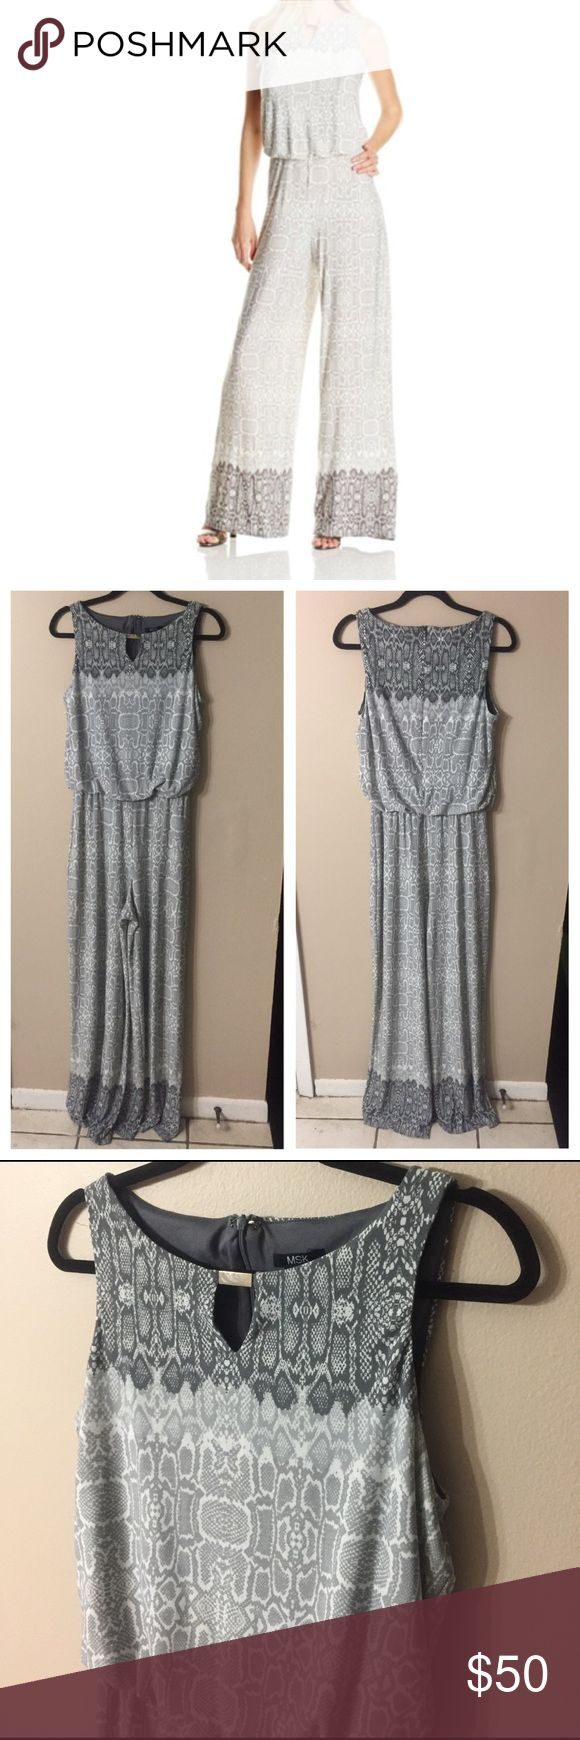 """MSK Sleeveless Animal Print Jumpsuit EUC!! Gorgeous blouson style jumpsuit with keyhole neckline and silver tone hardware at collar. Jumpsuit features elastic at waist, zip back, & wide leg. Laid flat chest measures 18"""", waist measures 13"""" (unstretched elastic,) inseam is 33.5"""", and leg opening is 14.5"""" laid flat. Some scuffs on hardware, barely noticeable, shown in 4th picture. MSK Pants Jumpsuits & Rompers"""